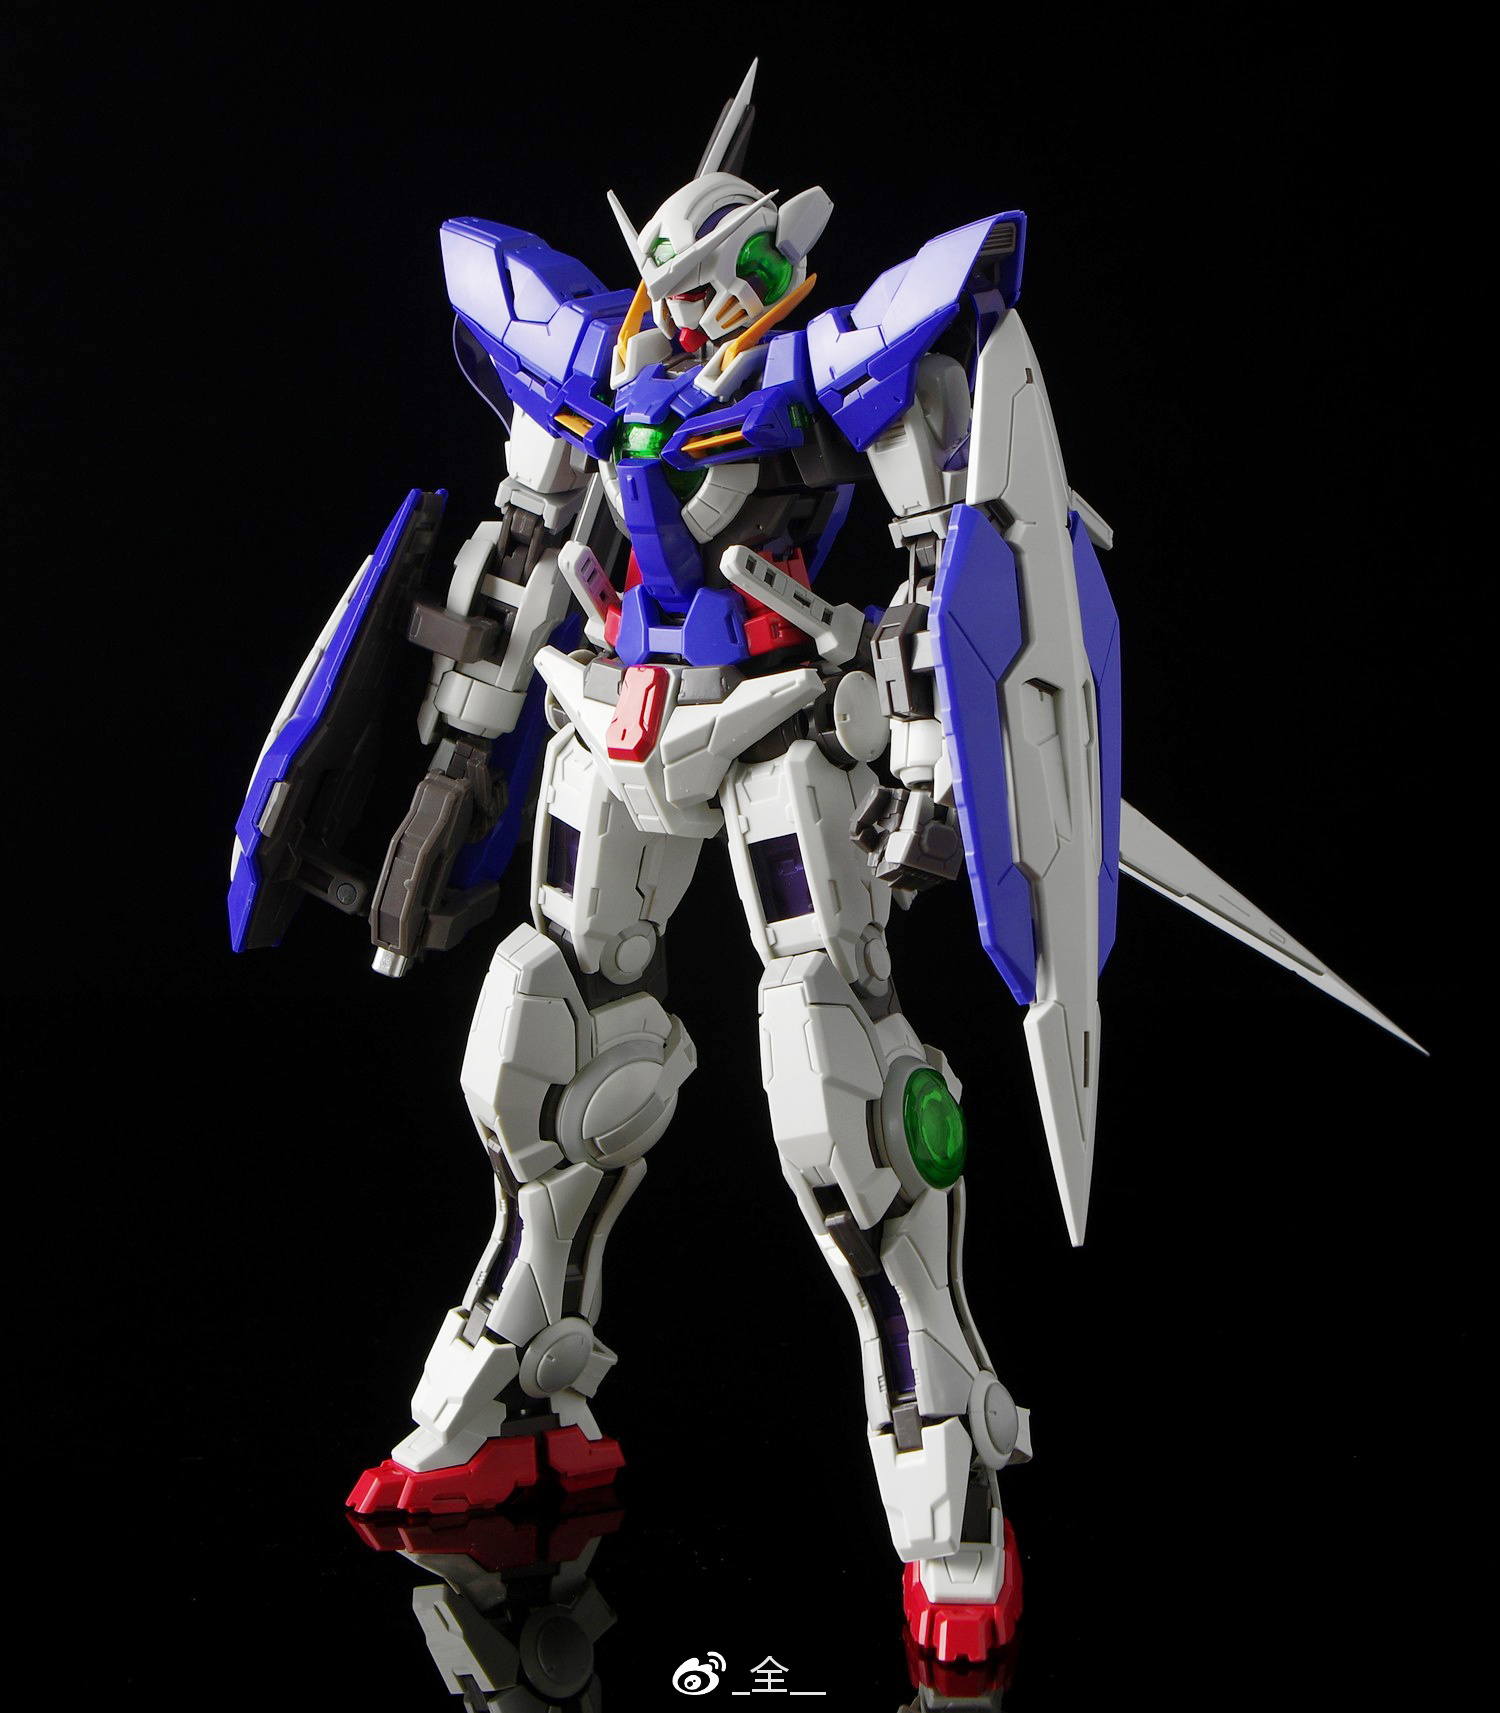 S269_mg_exia_led_hobby_star_inask_063.jpg